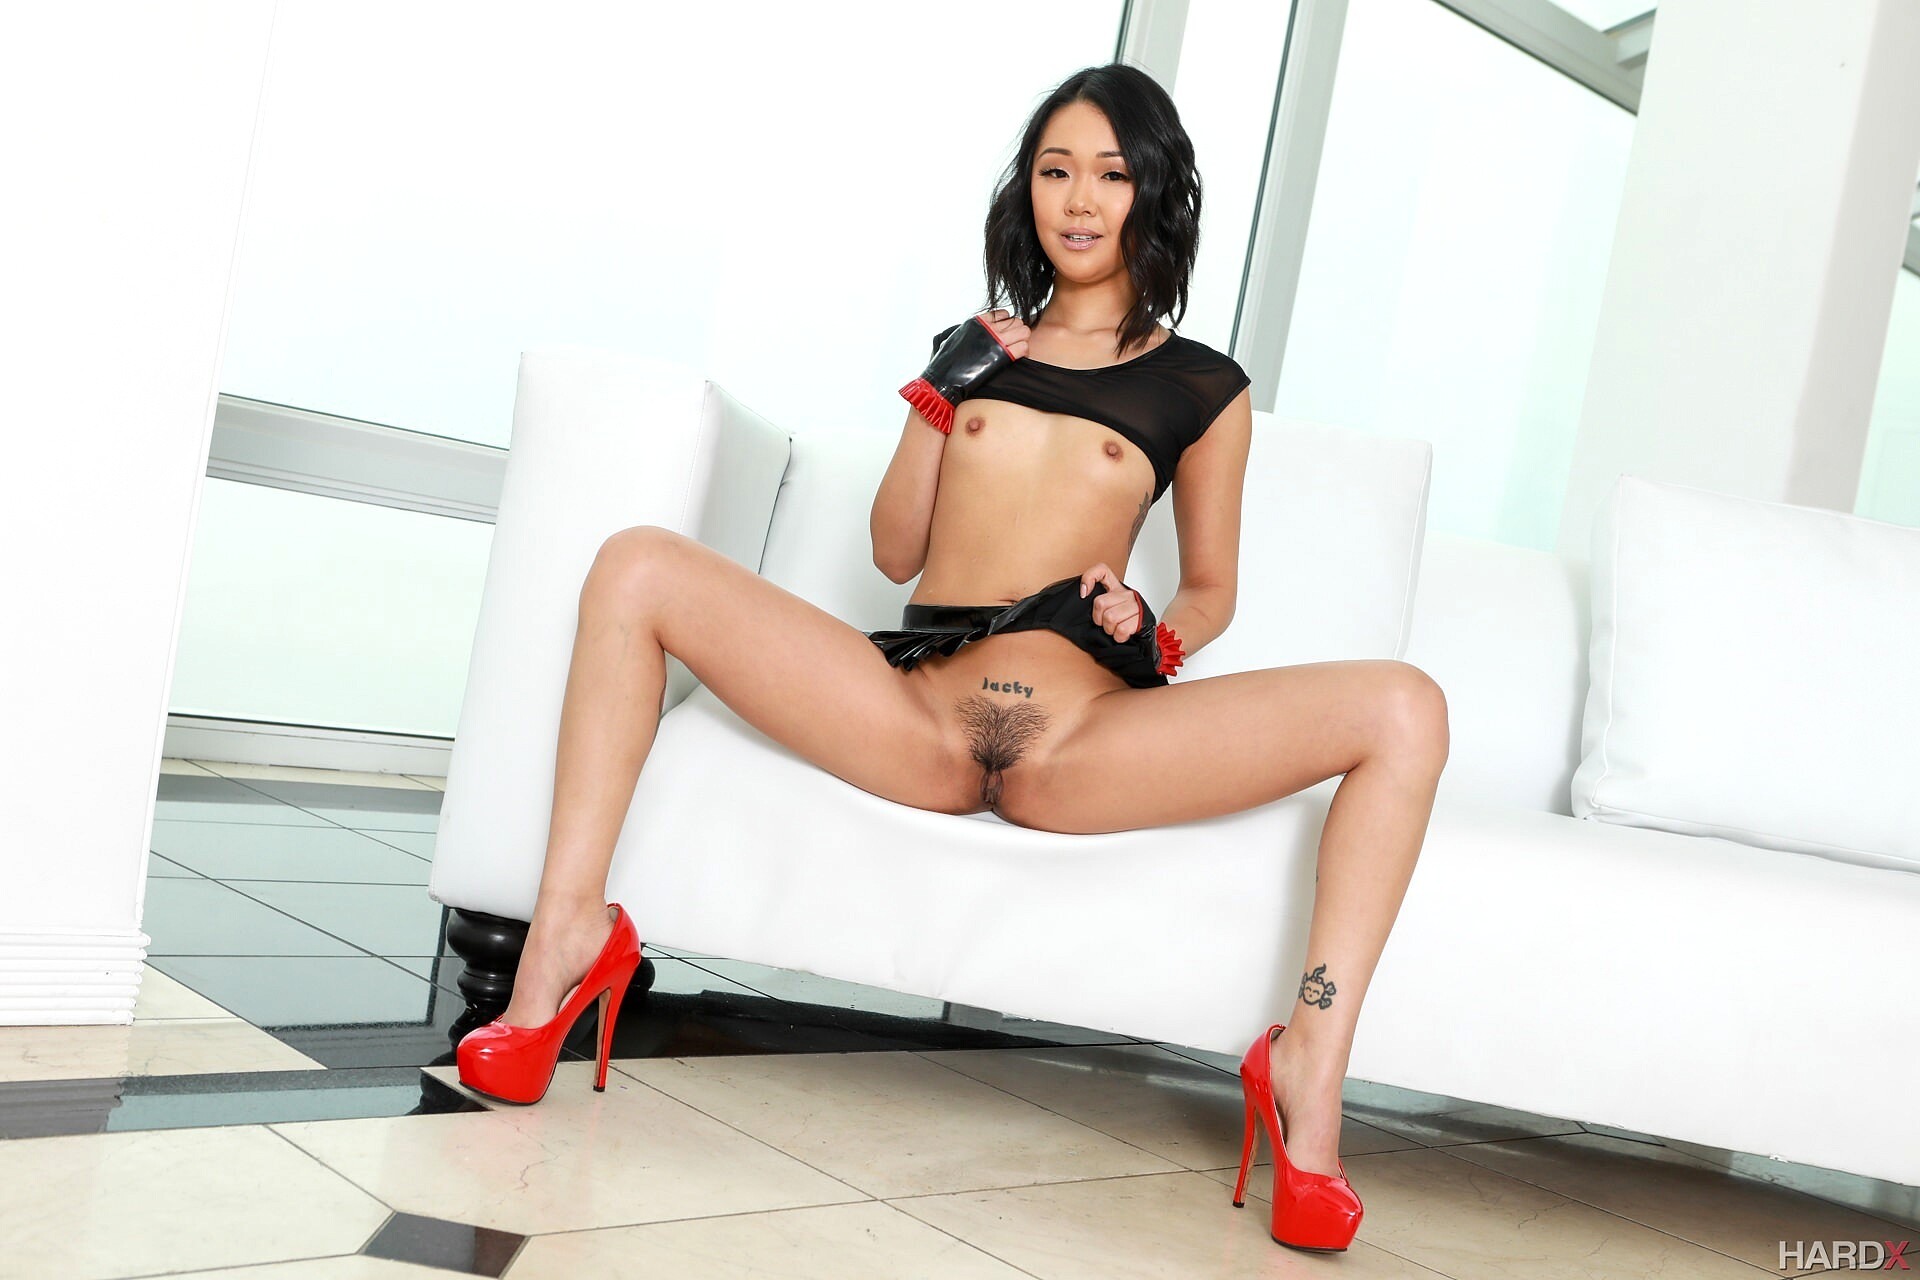 Babe Today Xempire Saya Song Imags Cowgirl Free Porn Porn Pics-6200